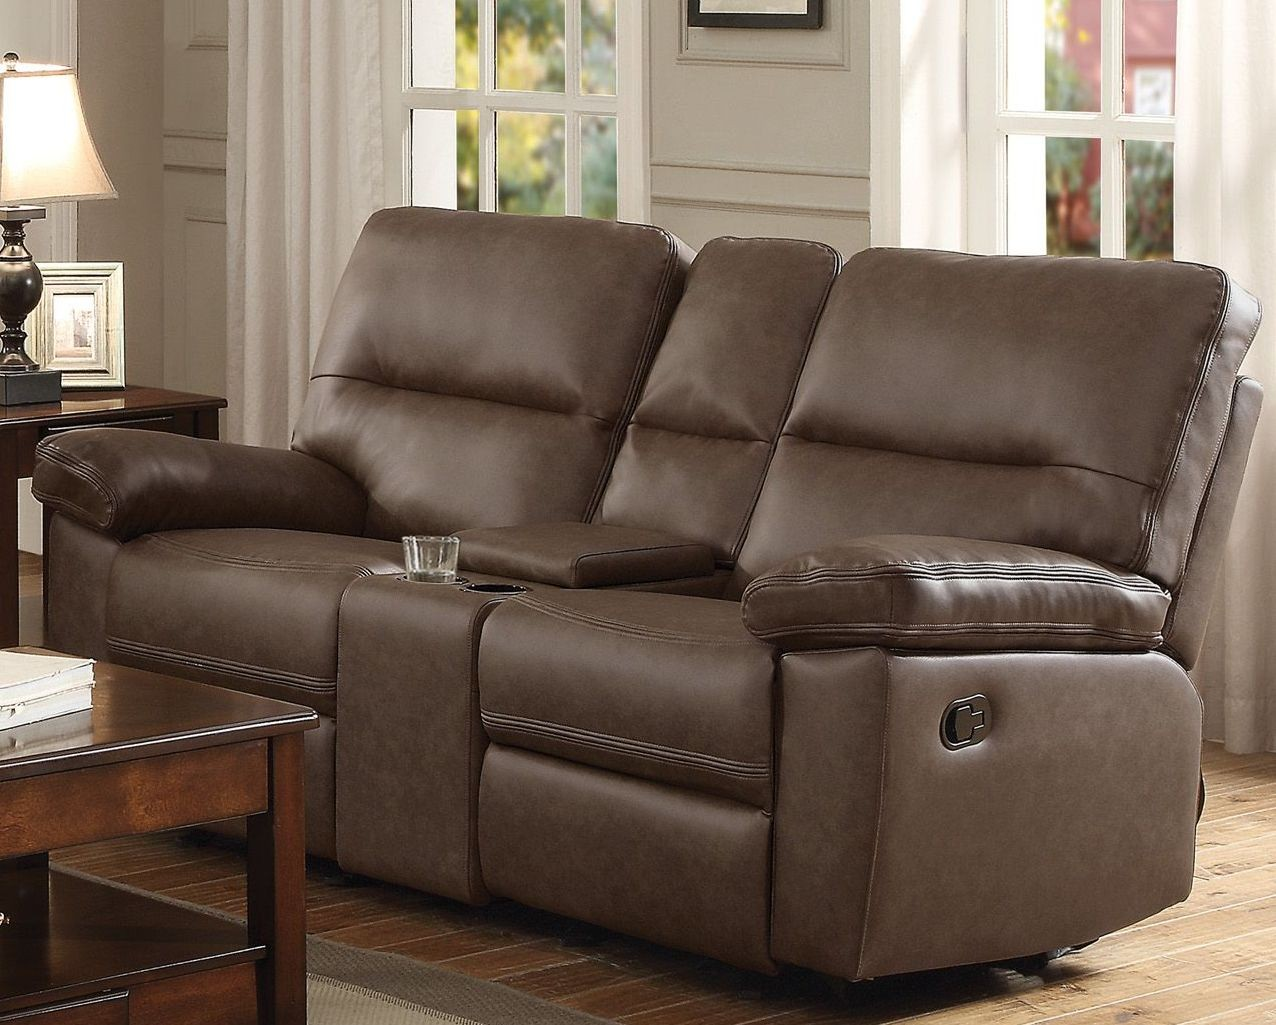 Nell Brown Double Glider Reclining Loveseat From Homelegance Coleman Furniture